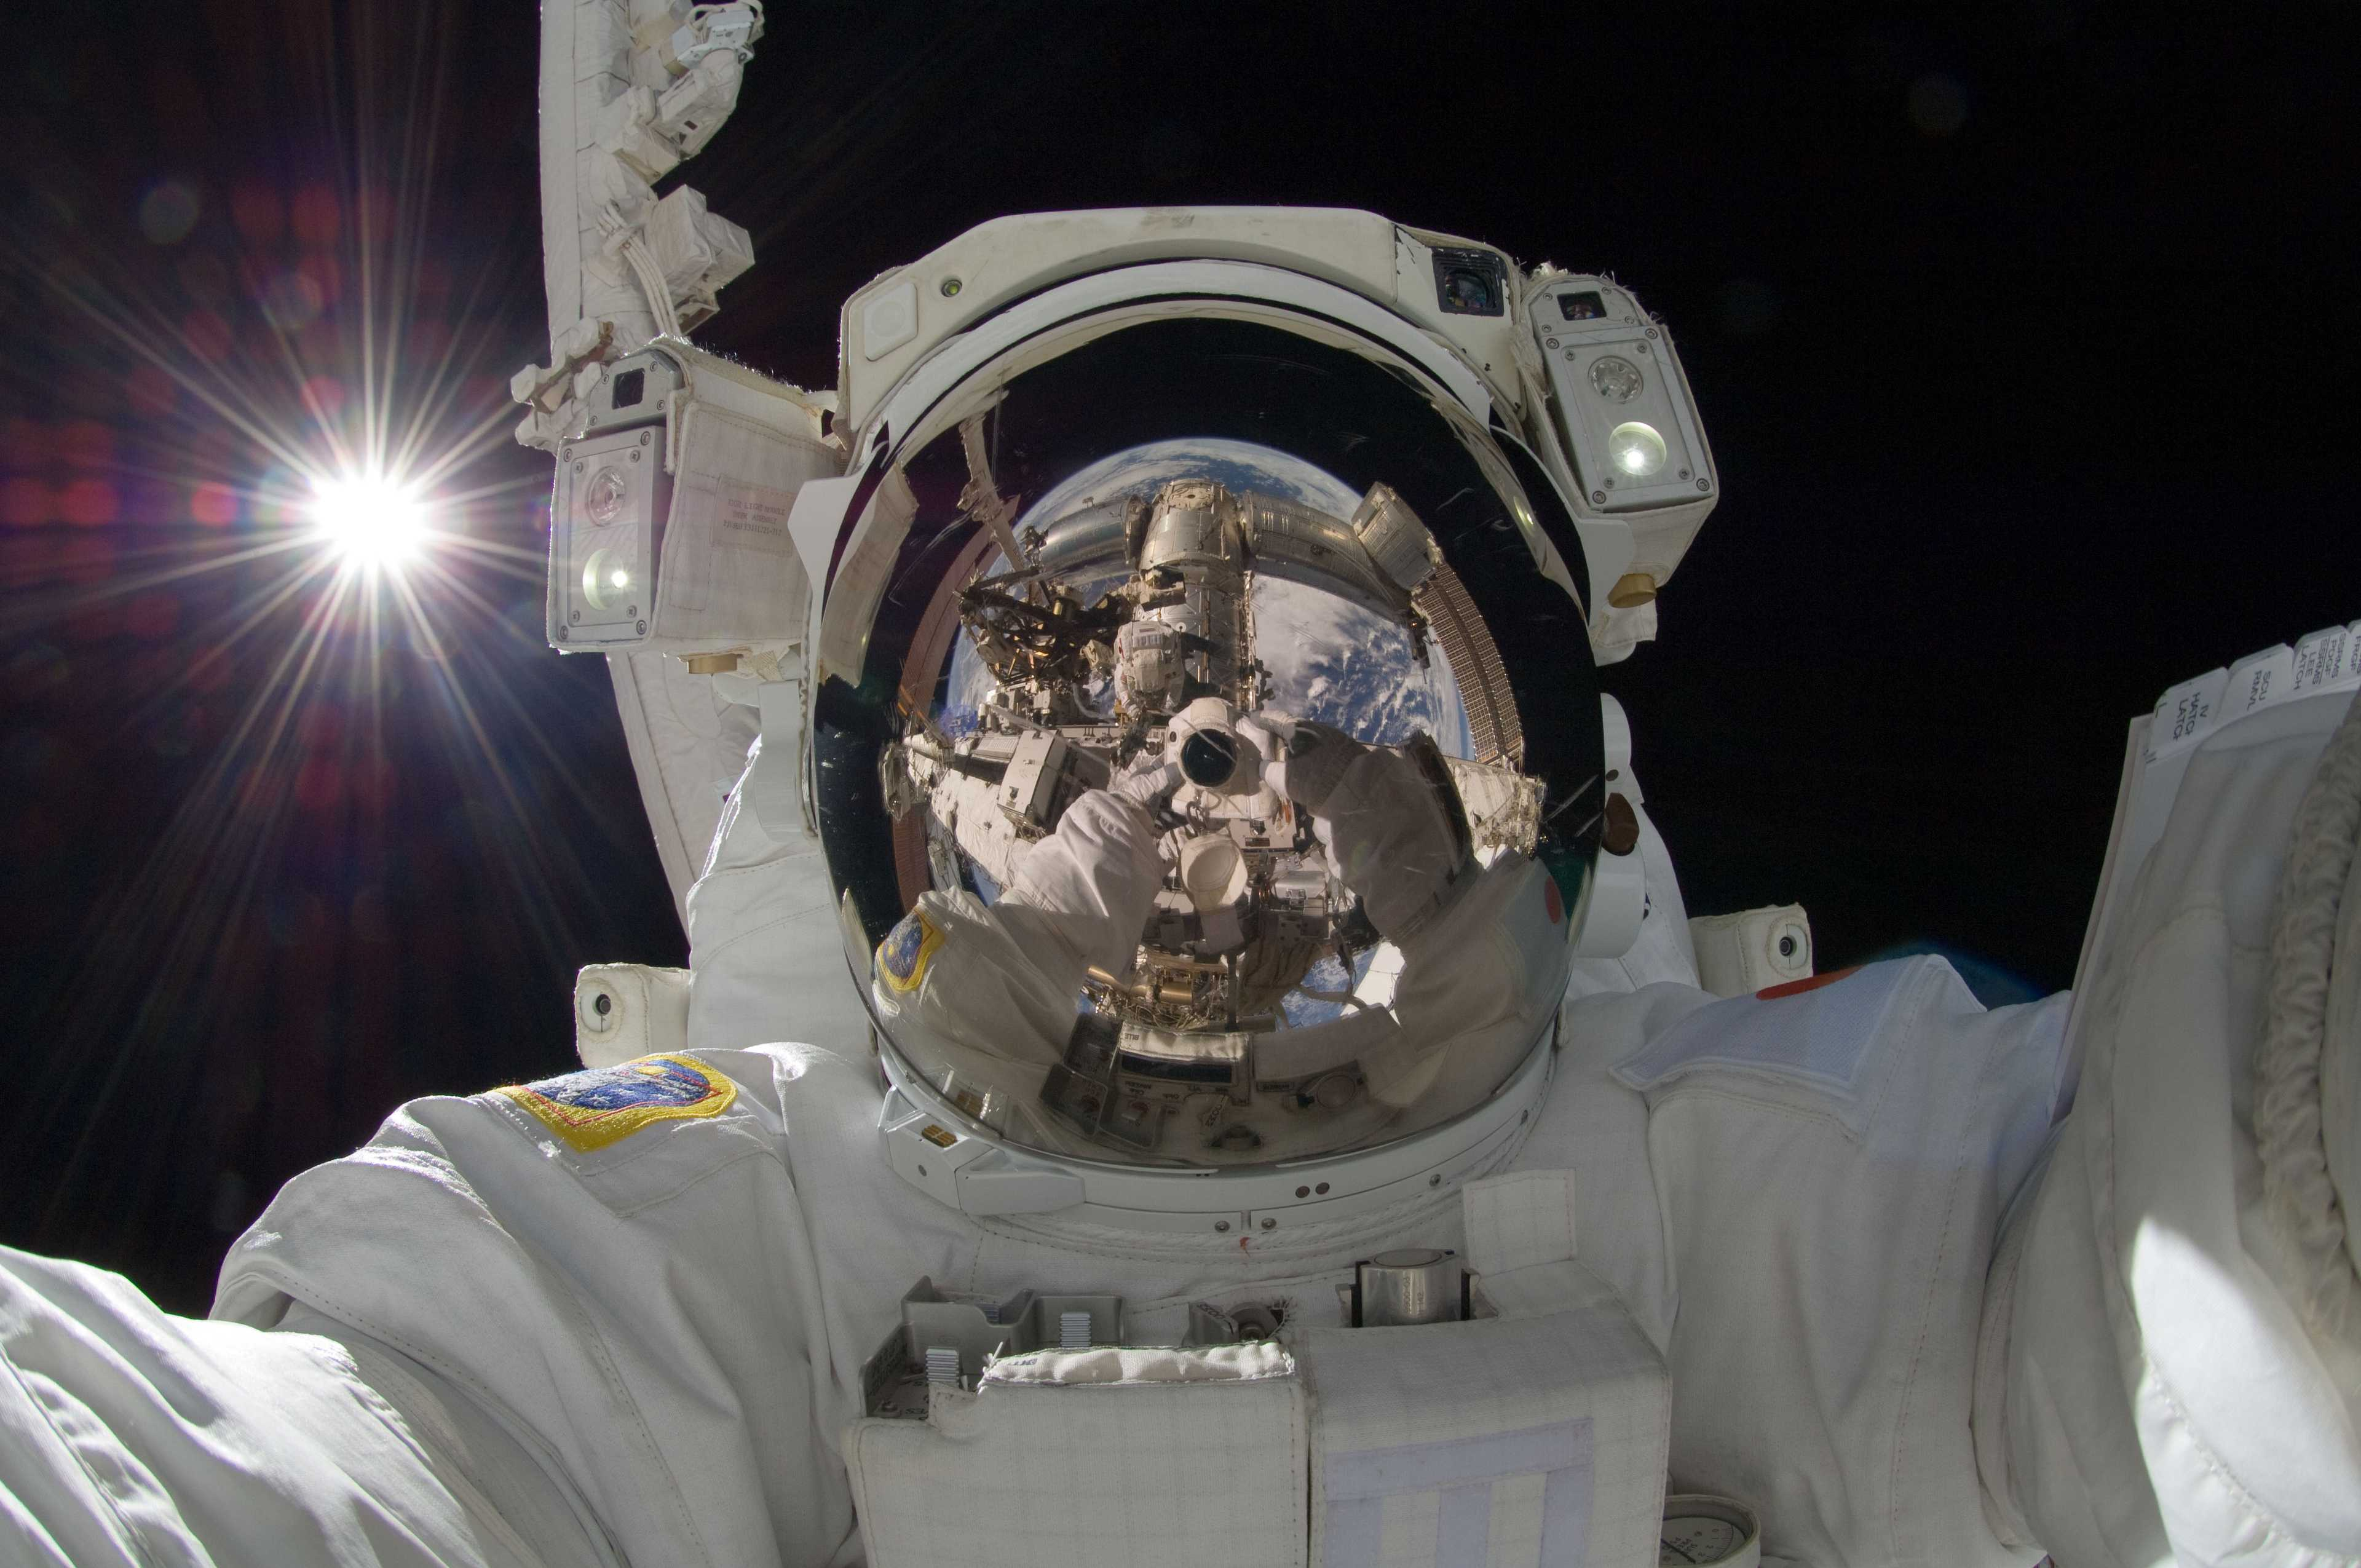 astronaut Aki Hoshide taking a self portrait in a spacesuit with the sun behind him and the camera, ISS and Earth visible in his visor